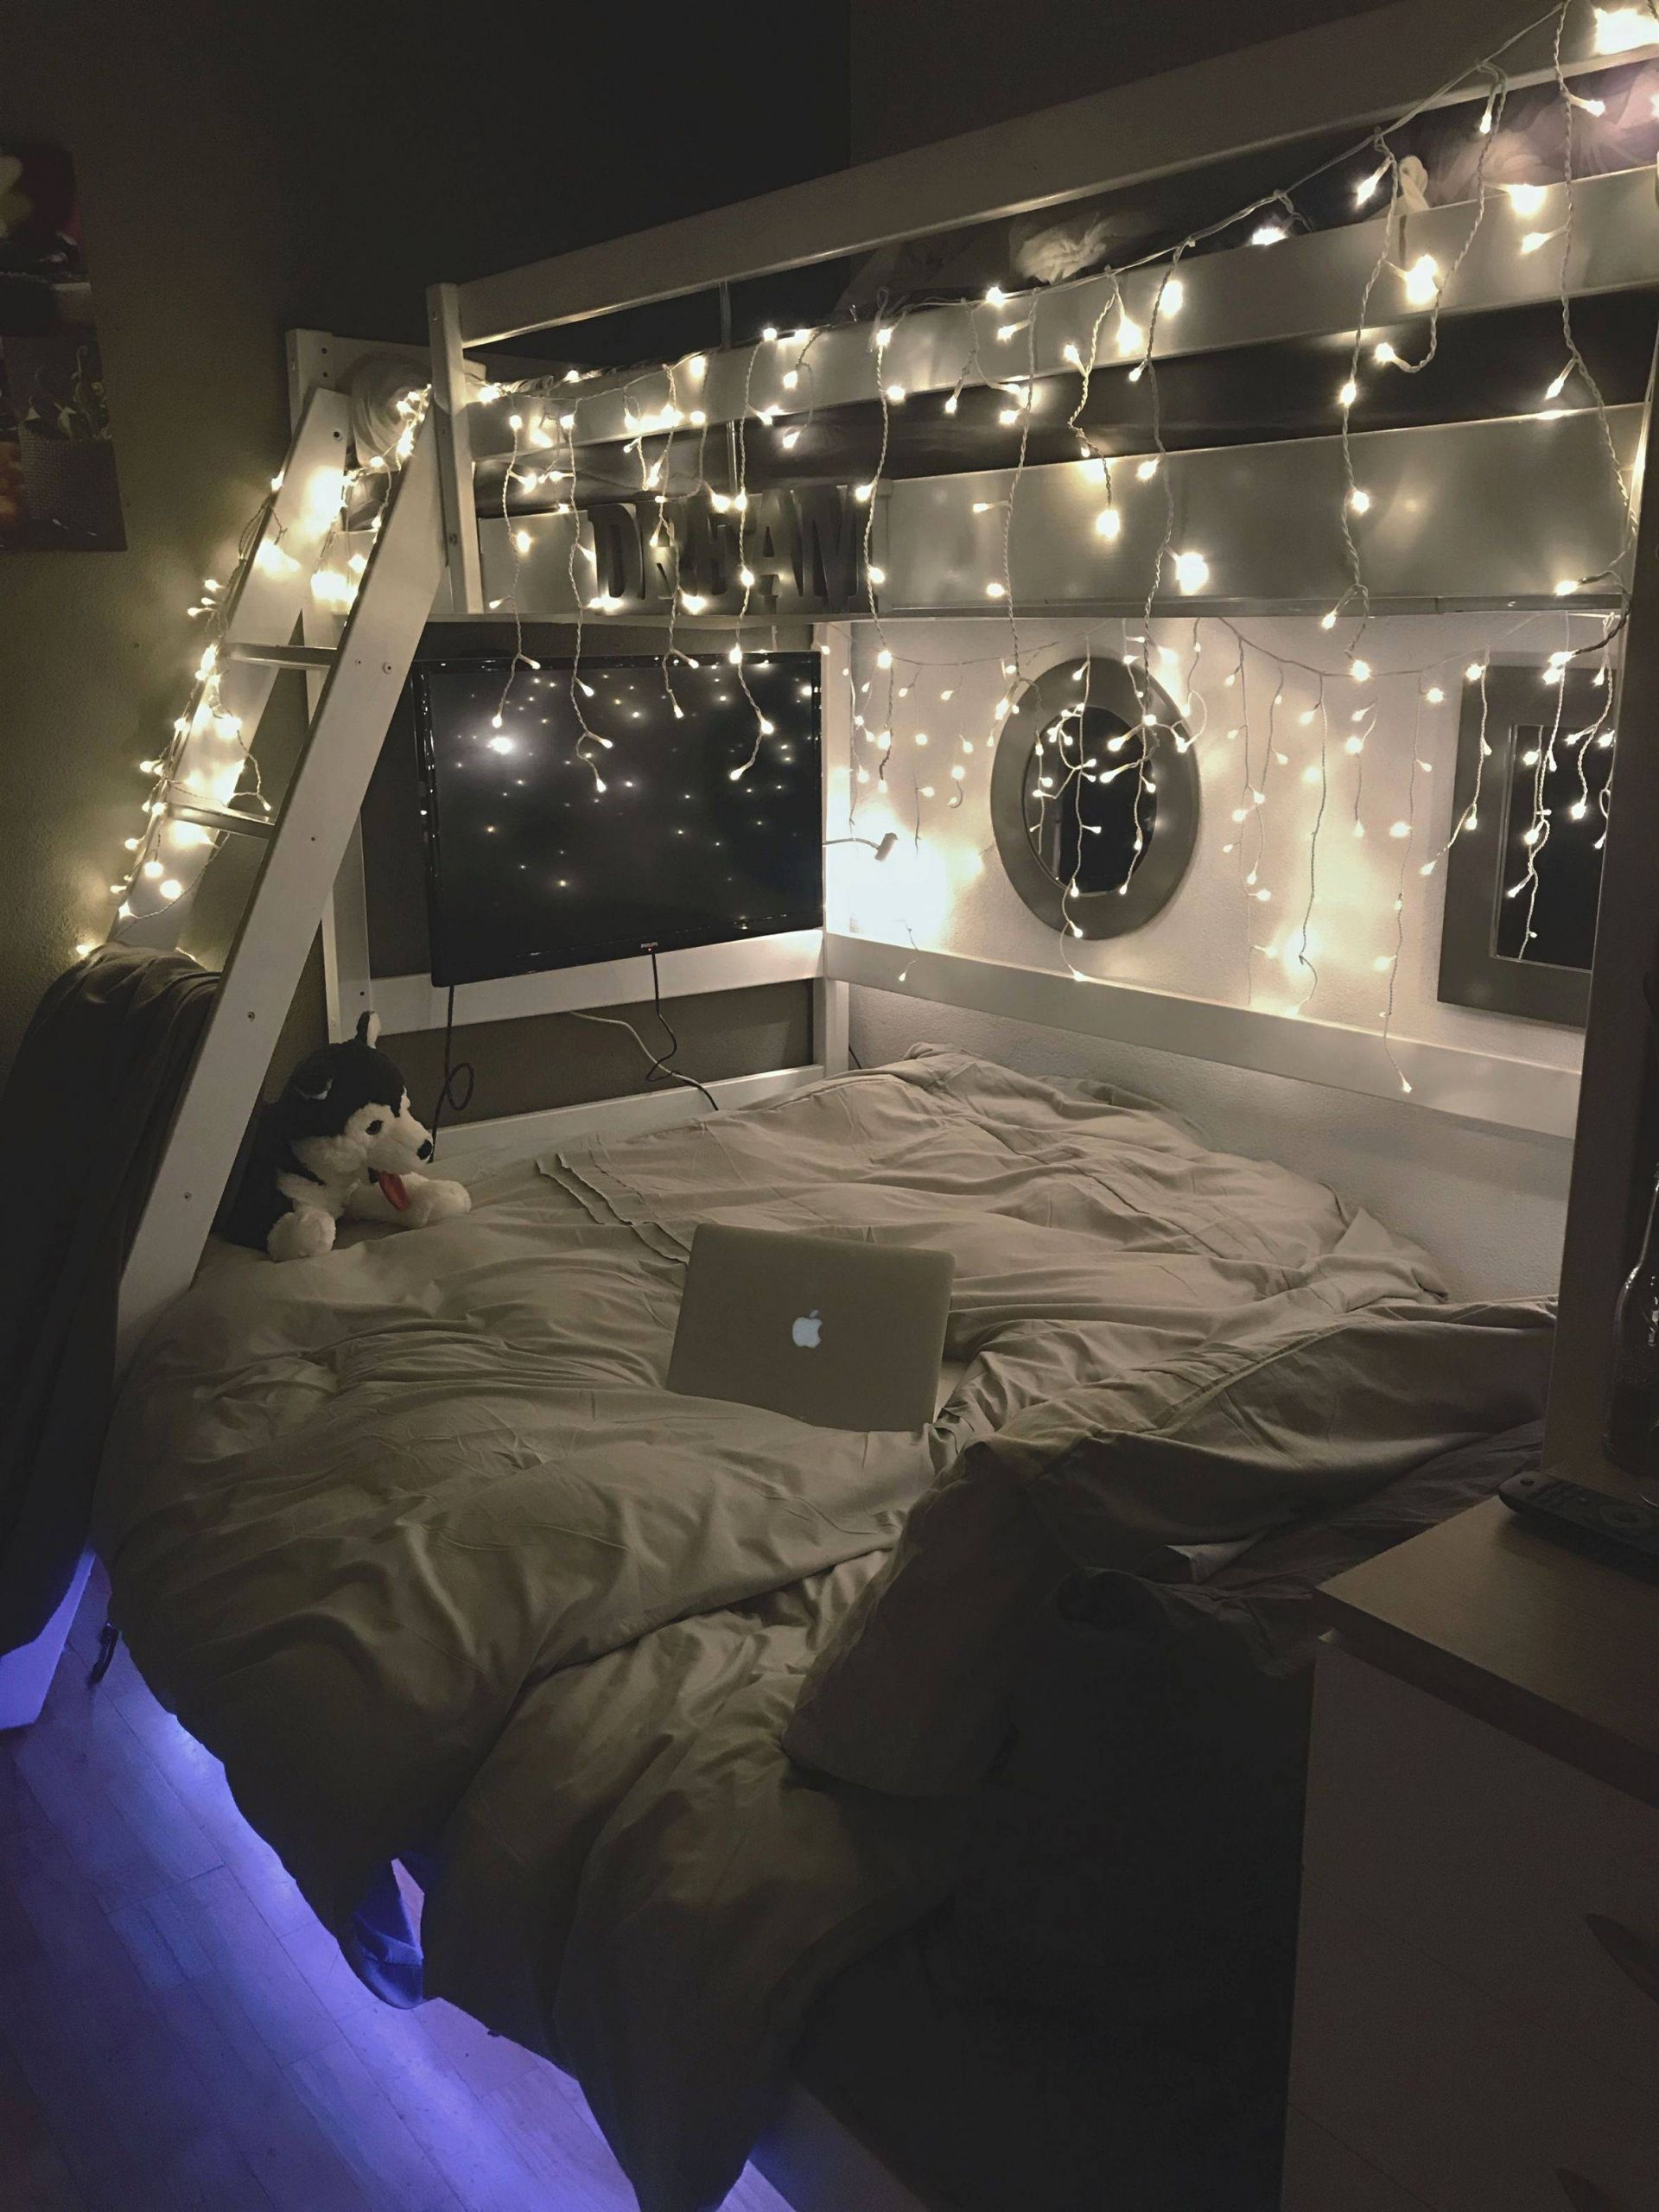 Fall Cozy and Aesthetic Lights Teen Bedroom Awesome Fall Cozy and Aesthetic Lights Teen Bedroom